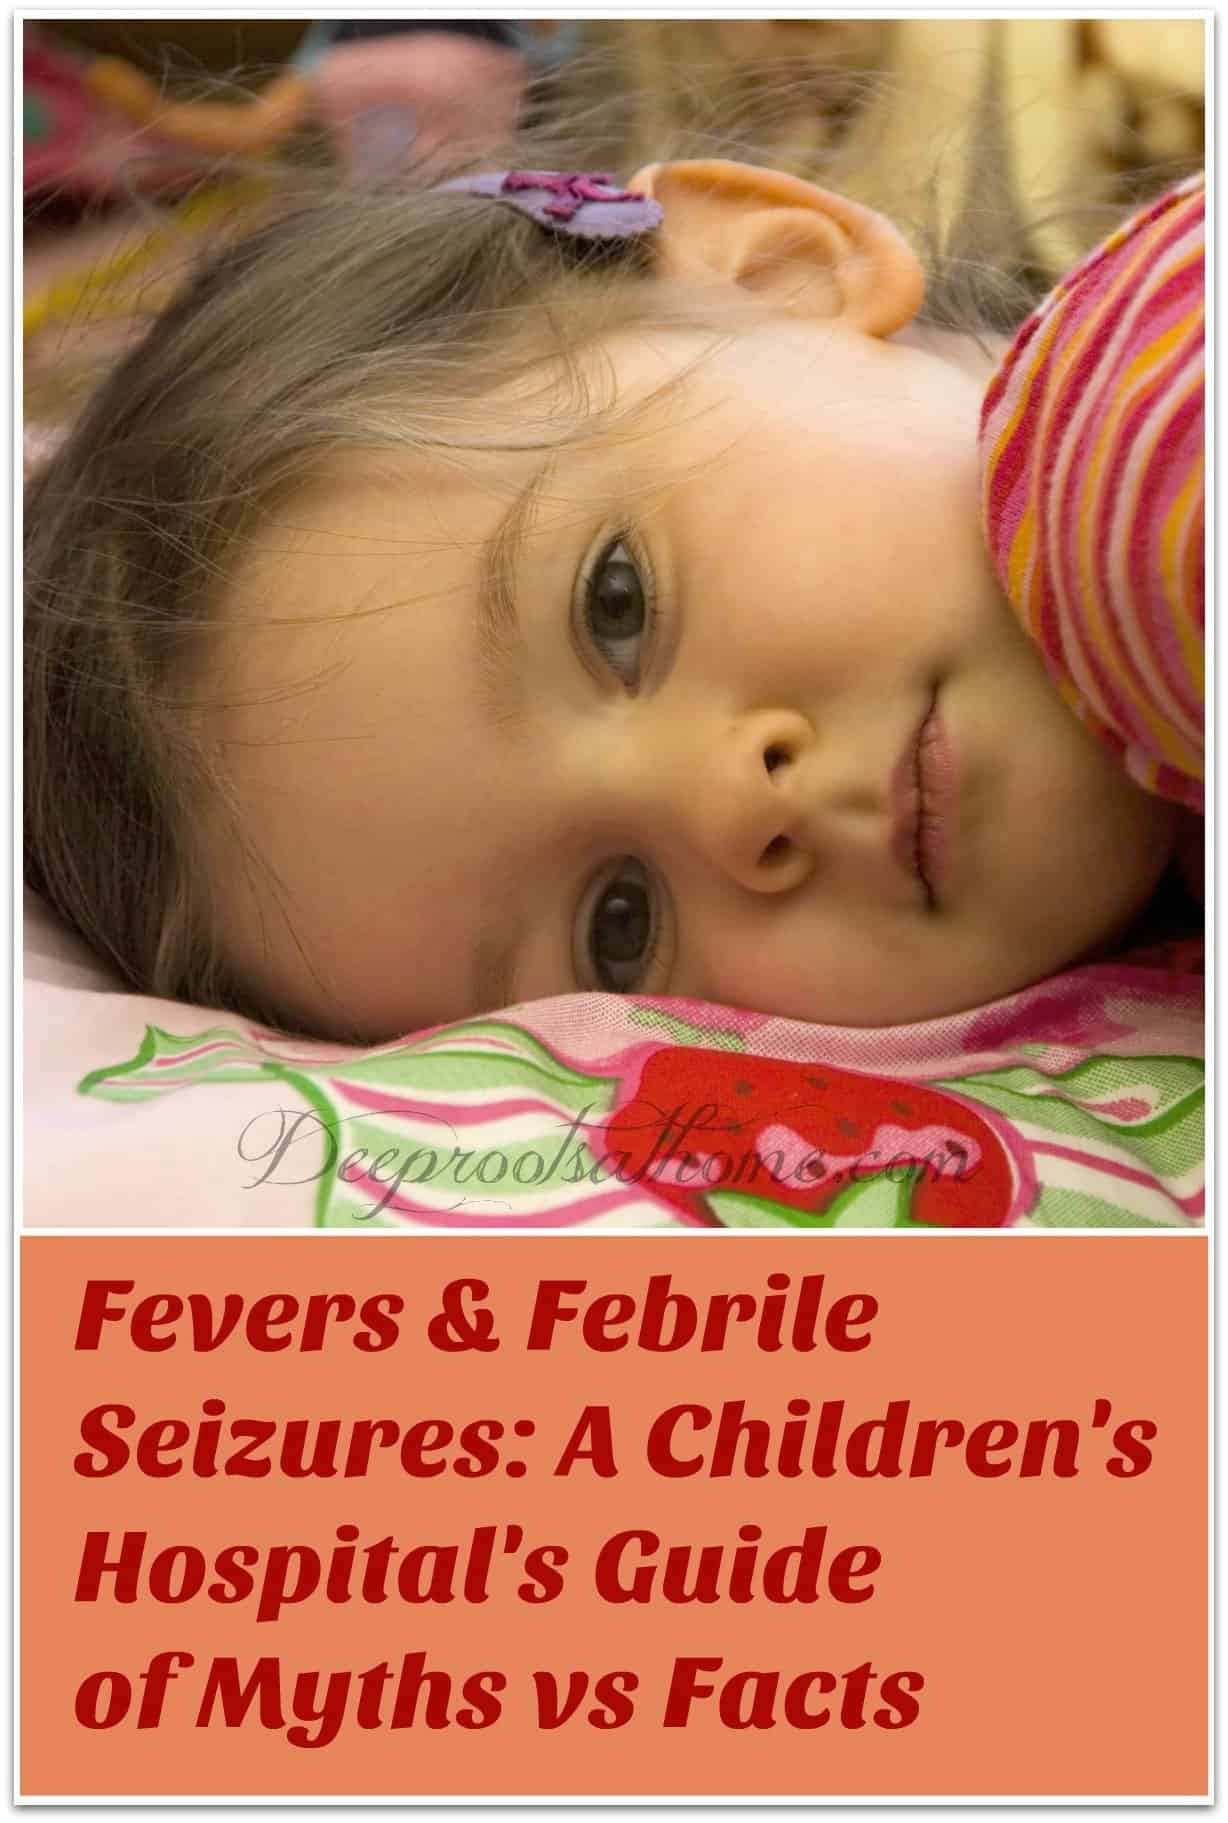 Fevers & Febrile Seizures: A Children's Hospital's Guide of Myths vs Facts. A young girl with a fever